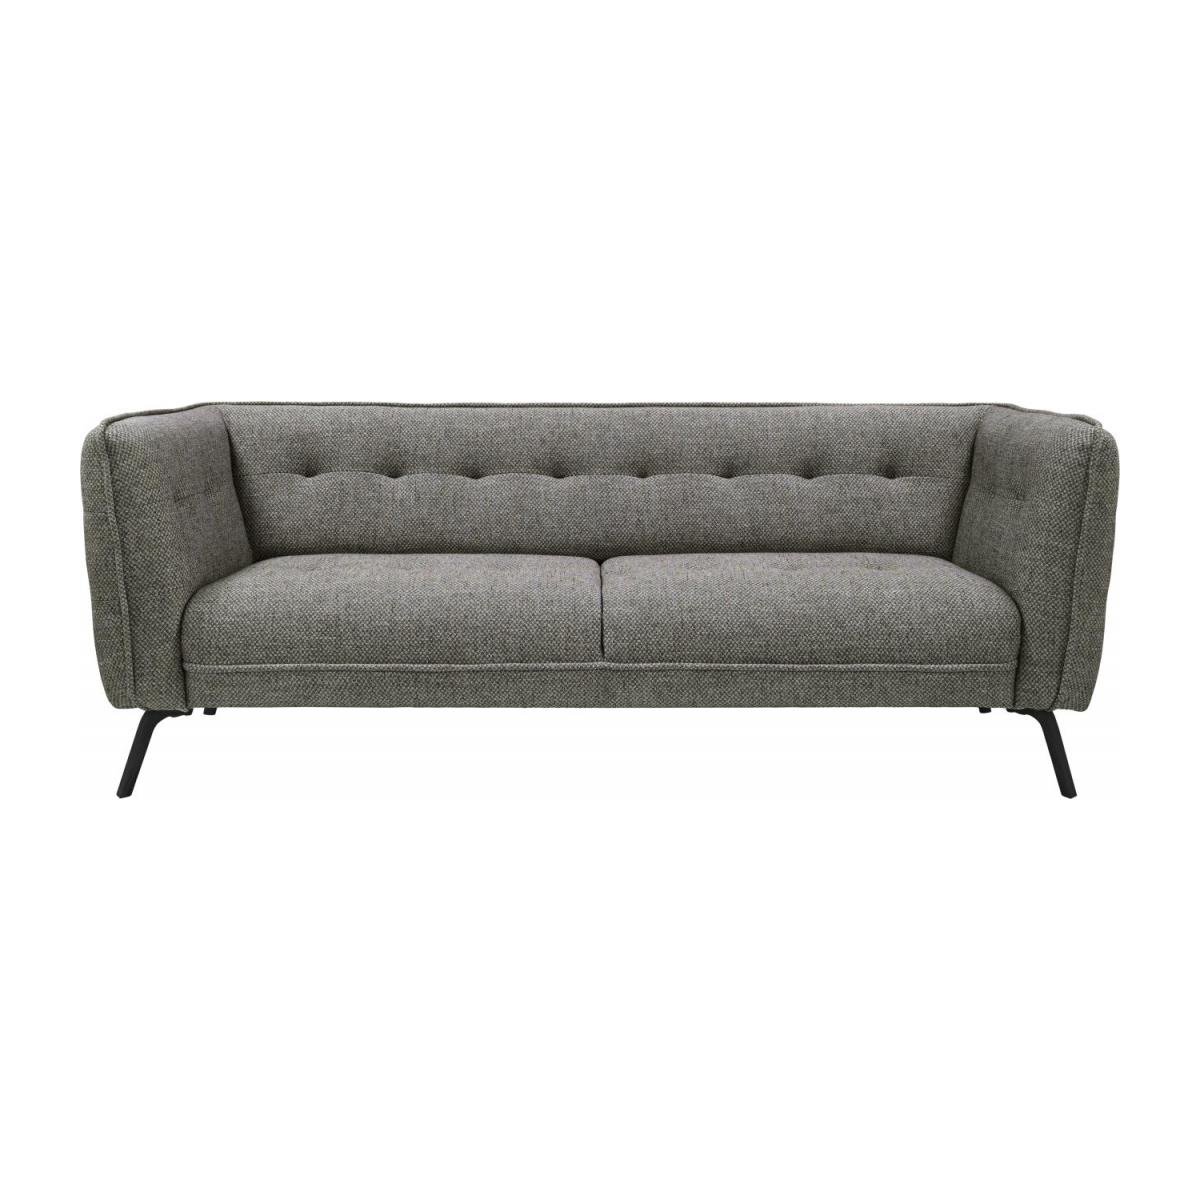 3 seater sofa in Bellagio fabric, night black and dark legs n°3